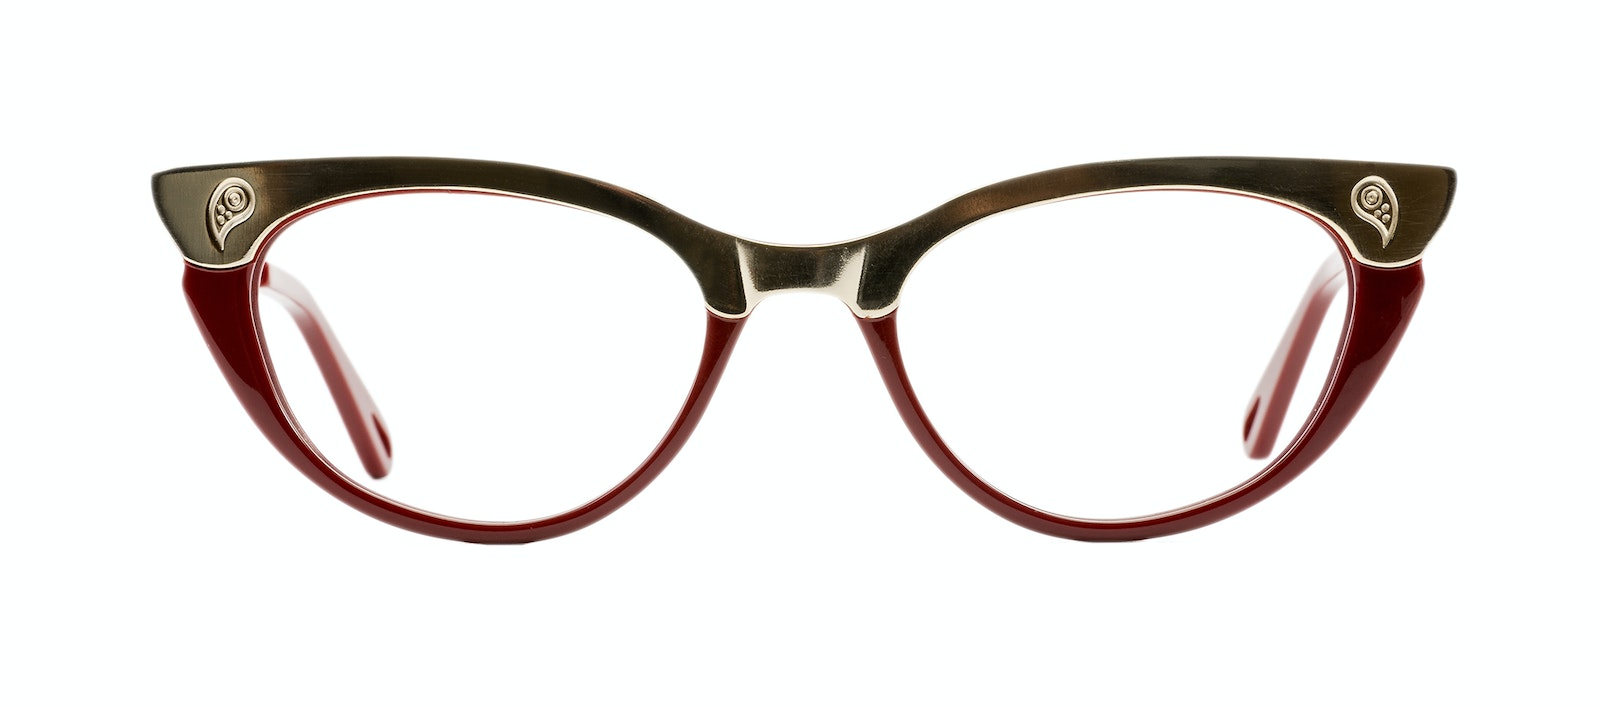 Affordable Fashion Glasses Cat Eye Daring Cateye Eyeglasses Women Bad Beti Paro Front